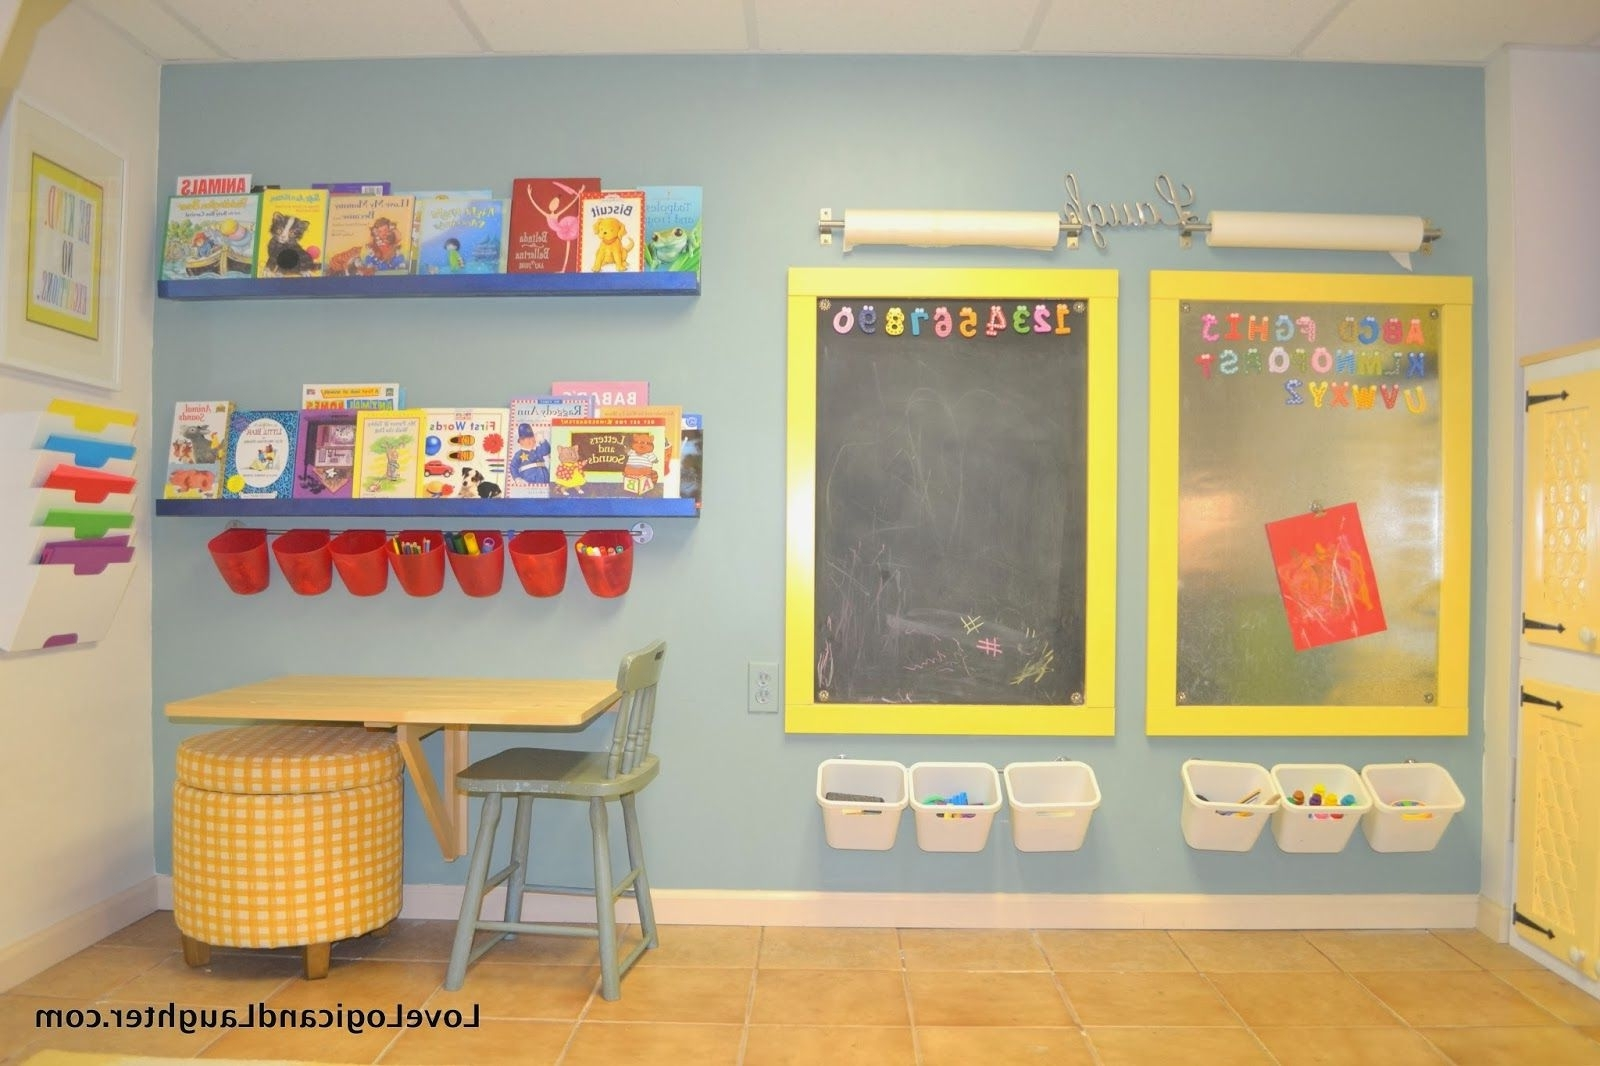 Latest Logic And Laughter: Reading Nook, Swing And Art Wall In The Pertaining To Wall Art For Playroom (View 6 of 15)